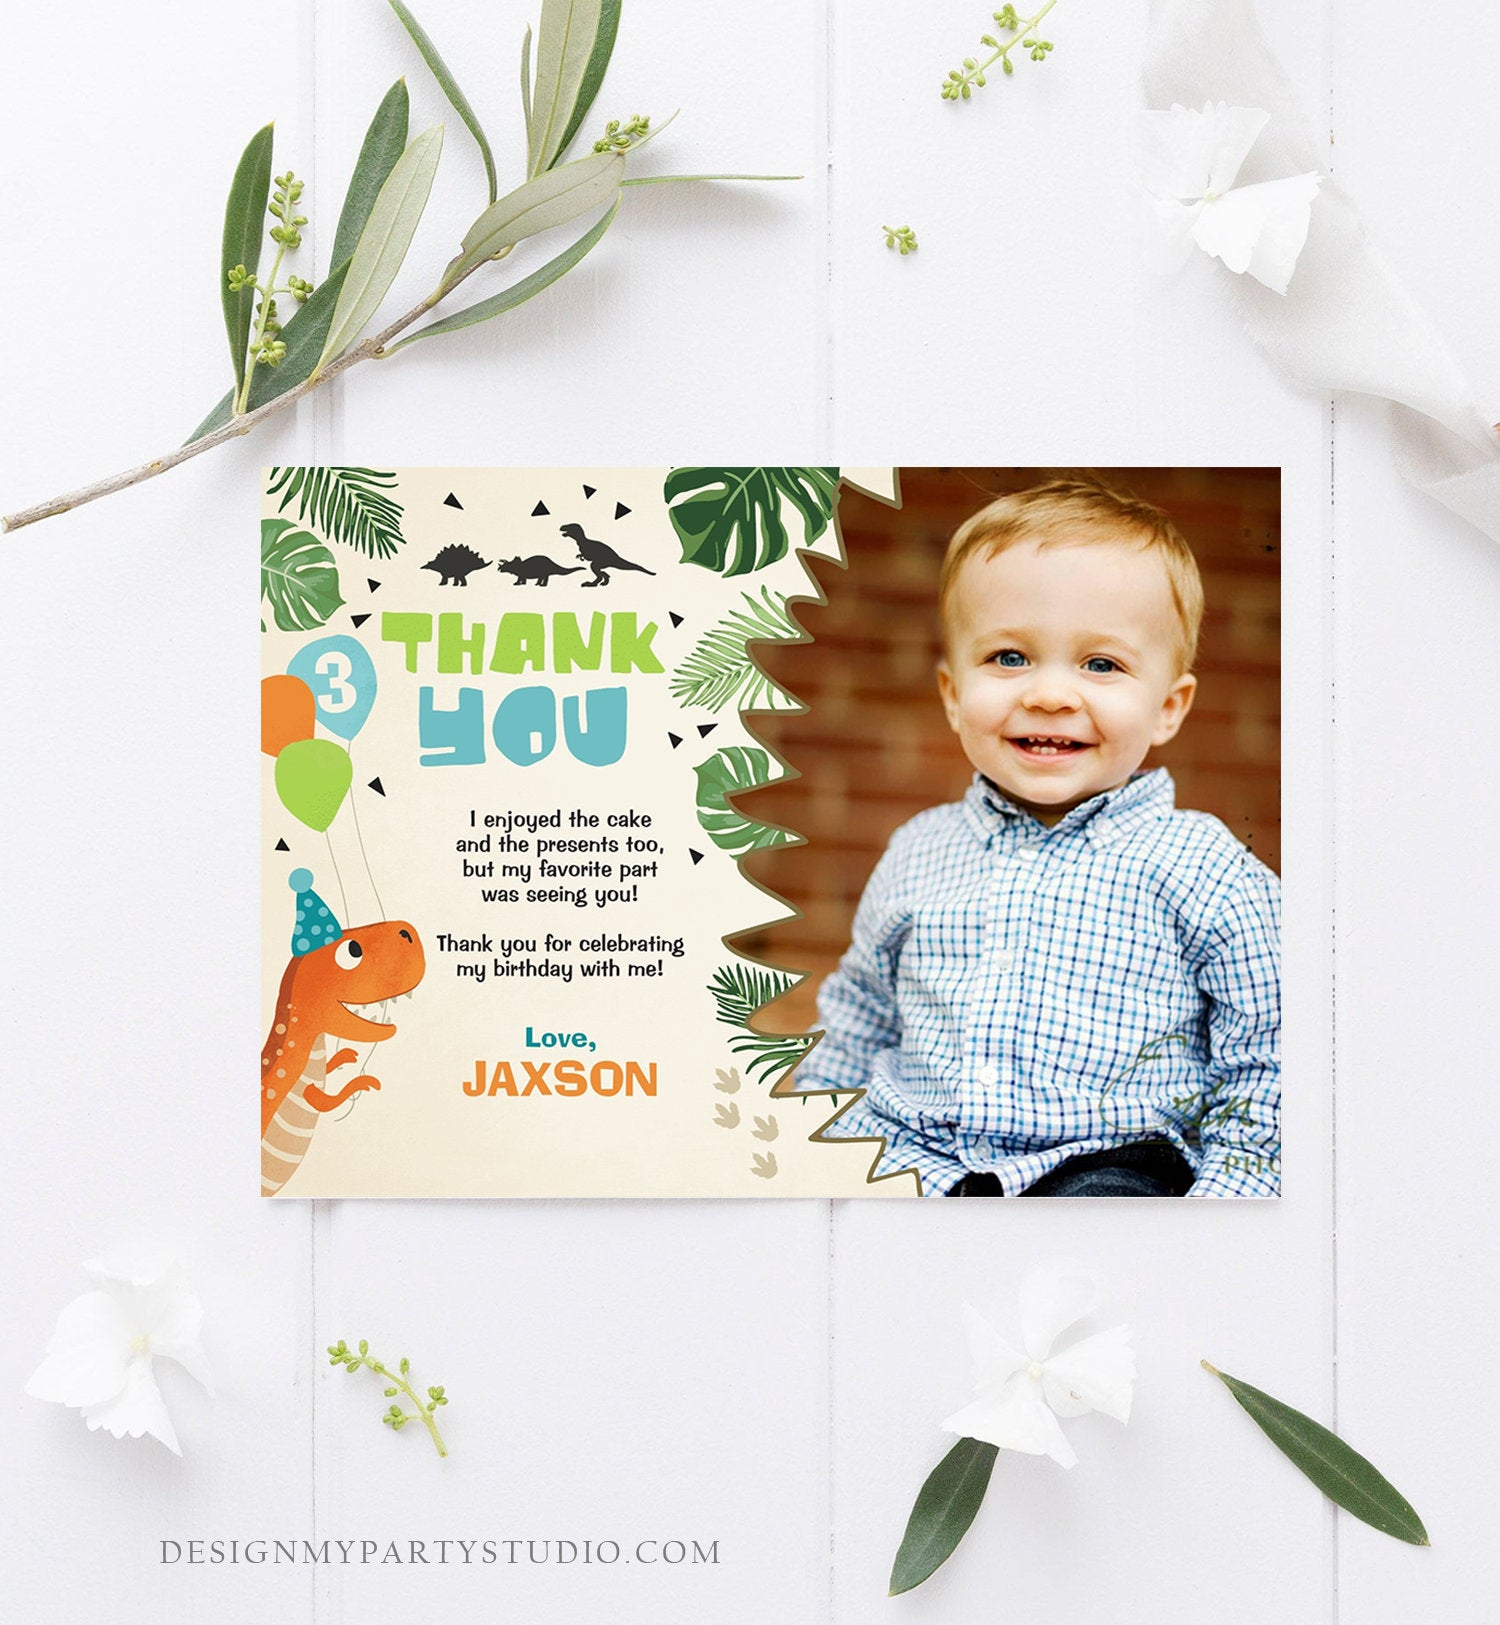 Editable Dinosaur Thank you Card Dino Birthday Dino Mite Prehistoric T-Rex ROAR Boy Dig Party Dino Dig Template Instant Download Corjl 0074